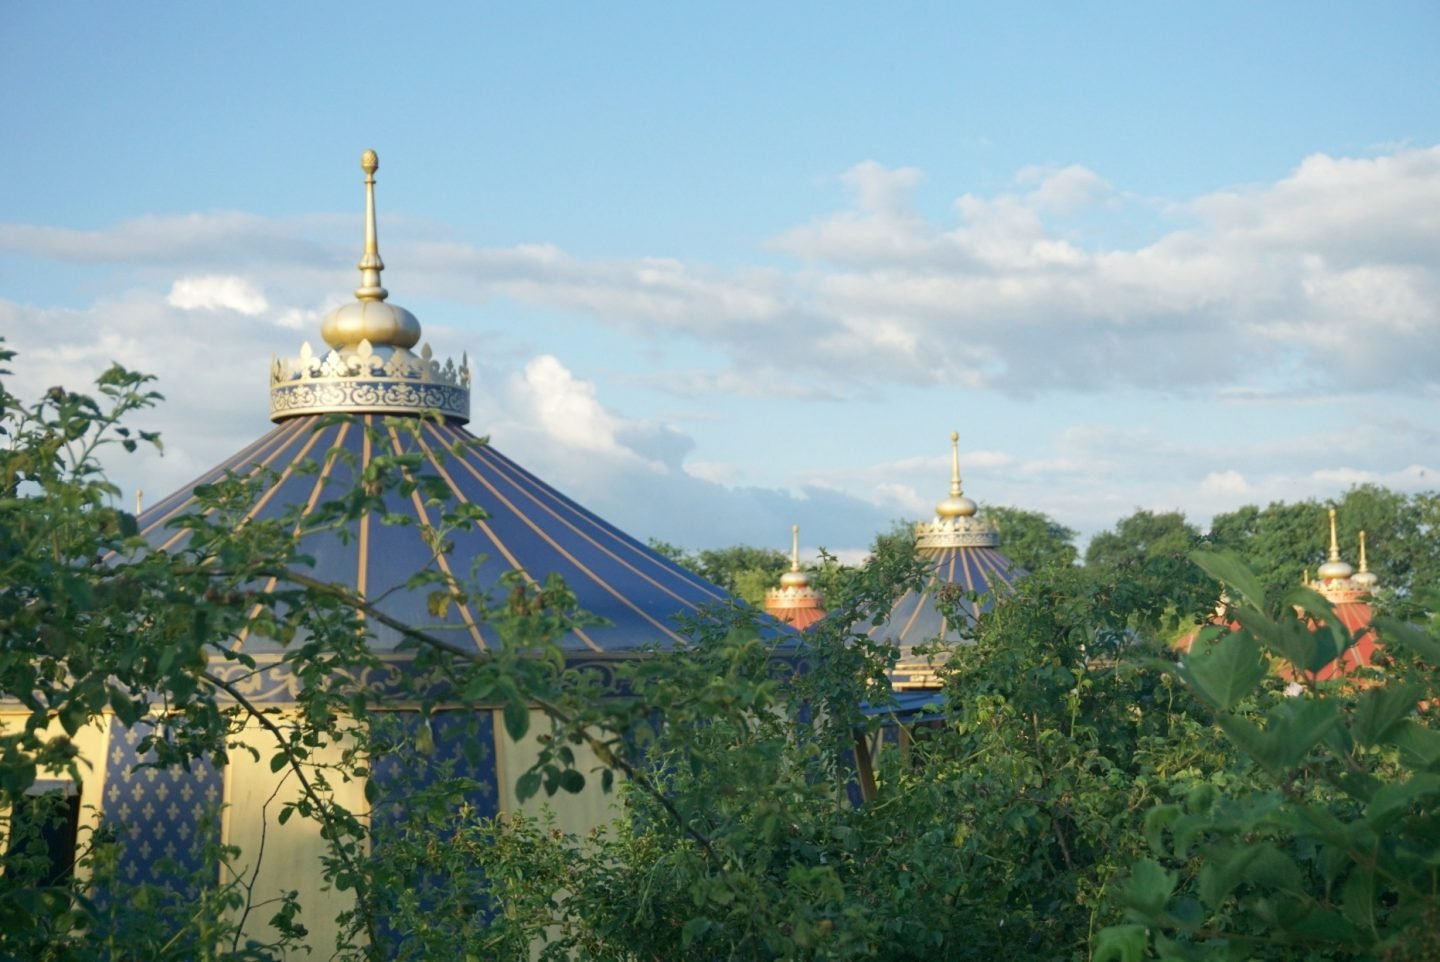 Sleeping in a Knights Tent style room at Le Camp Du Drap D'Or at Puy Du Fou